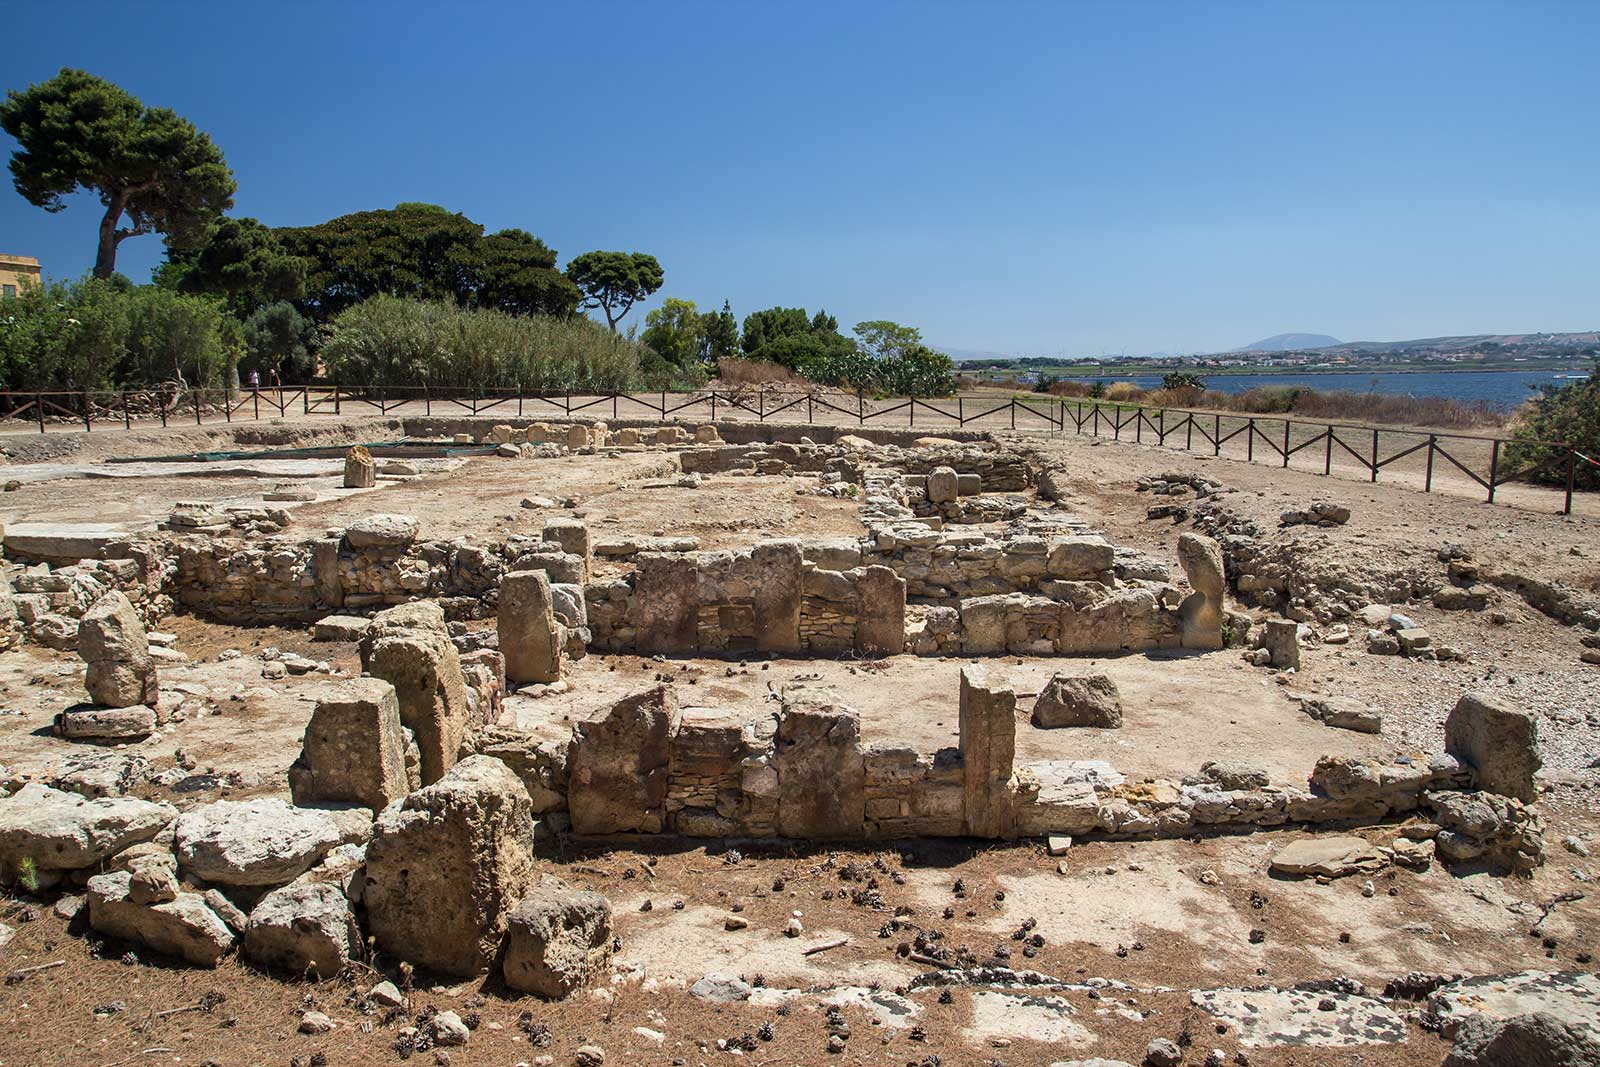 The remains of a Phoenician settlement on the island of Mozia. Stock photo.